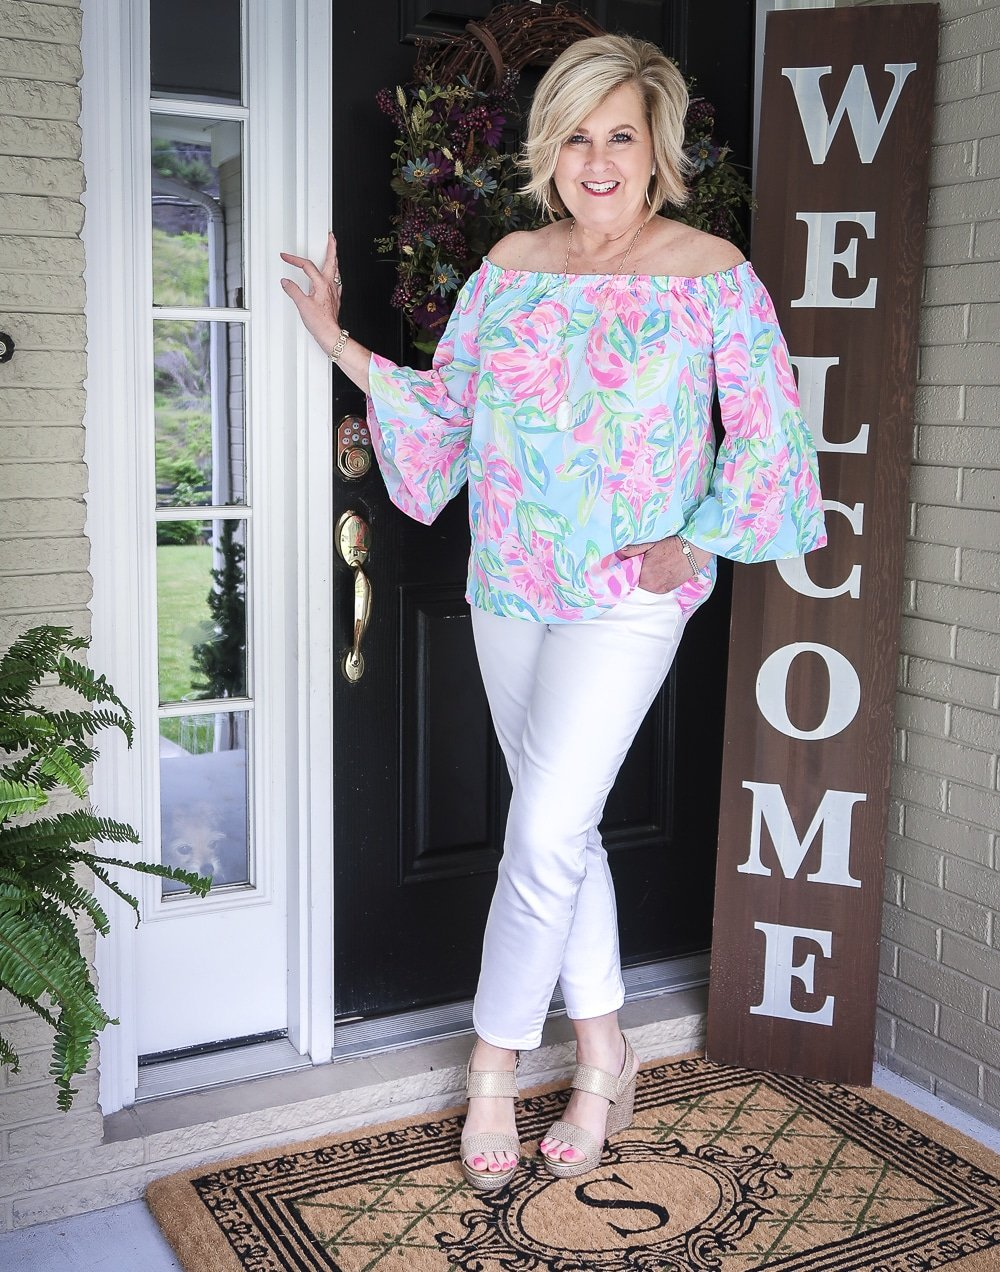 Fashion Blogger 50 Is Not Old wearing a colorful off the shoulder top from Lilly Pulitzer and white crop jeans